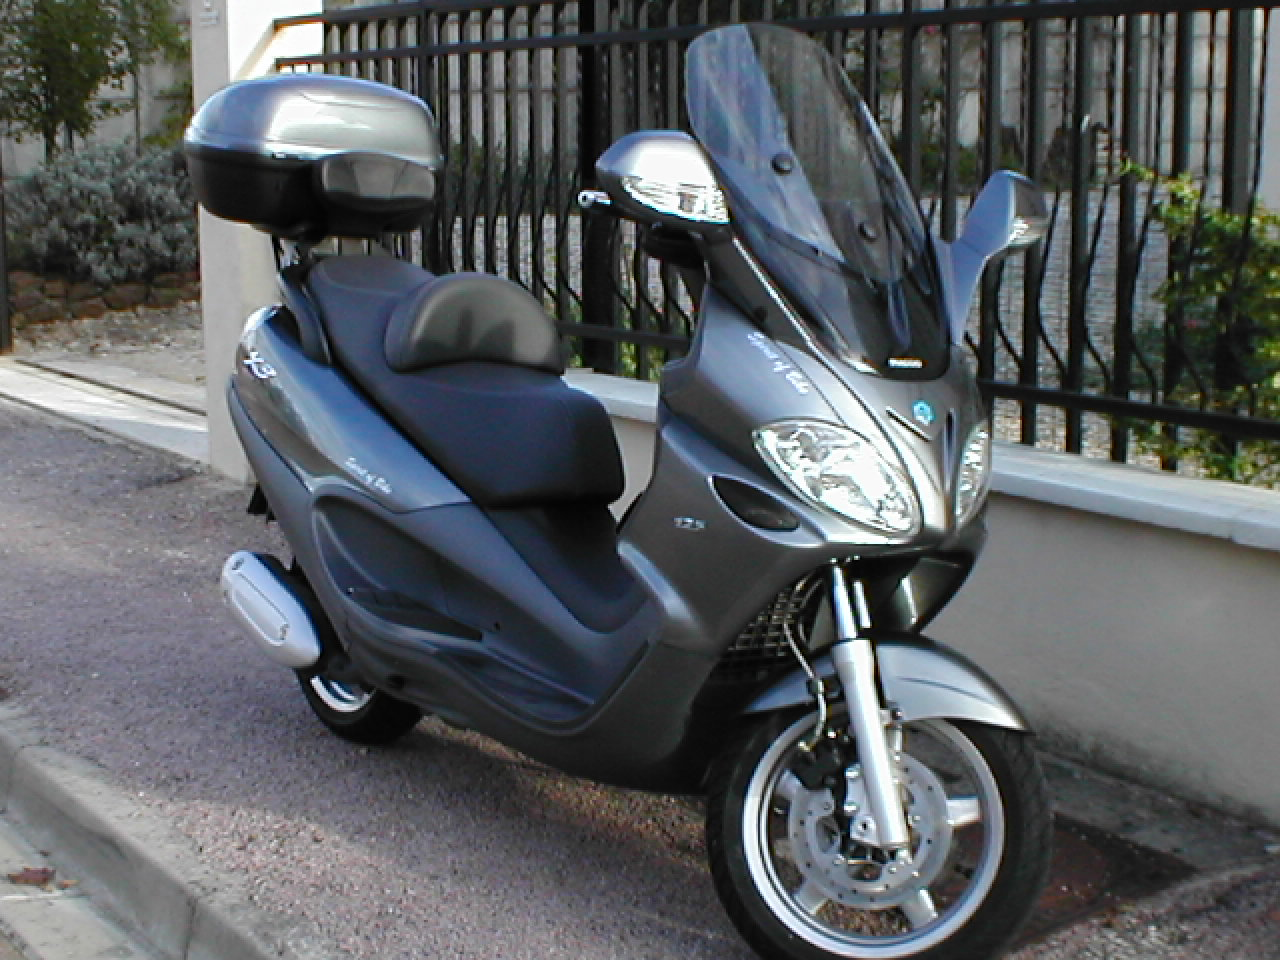 piaggio piaggio x9 evolution 125 moto zombdrive com. Black Bedroom Furniture Sets. Home Design Ideas